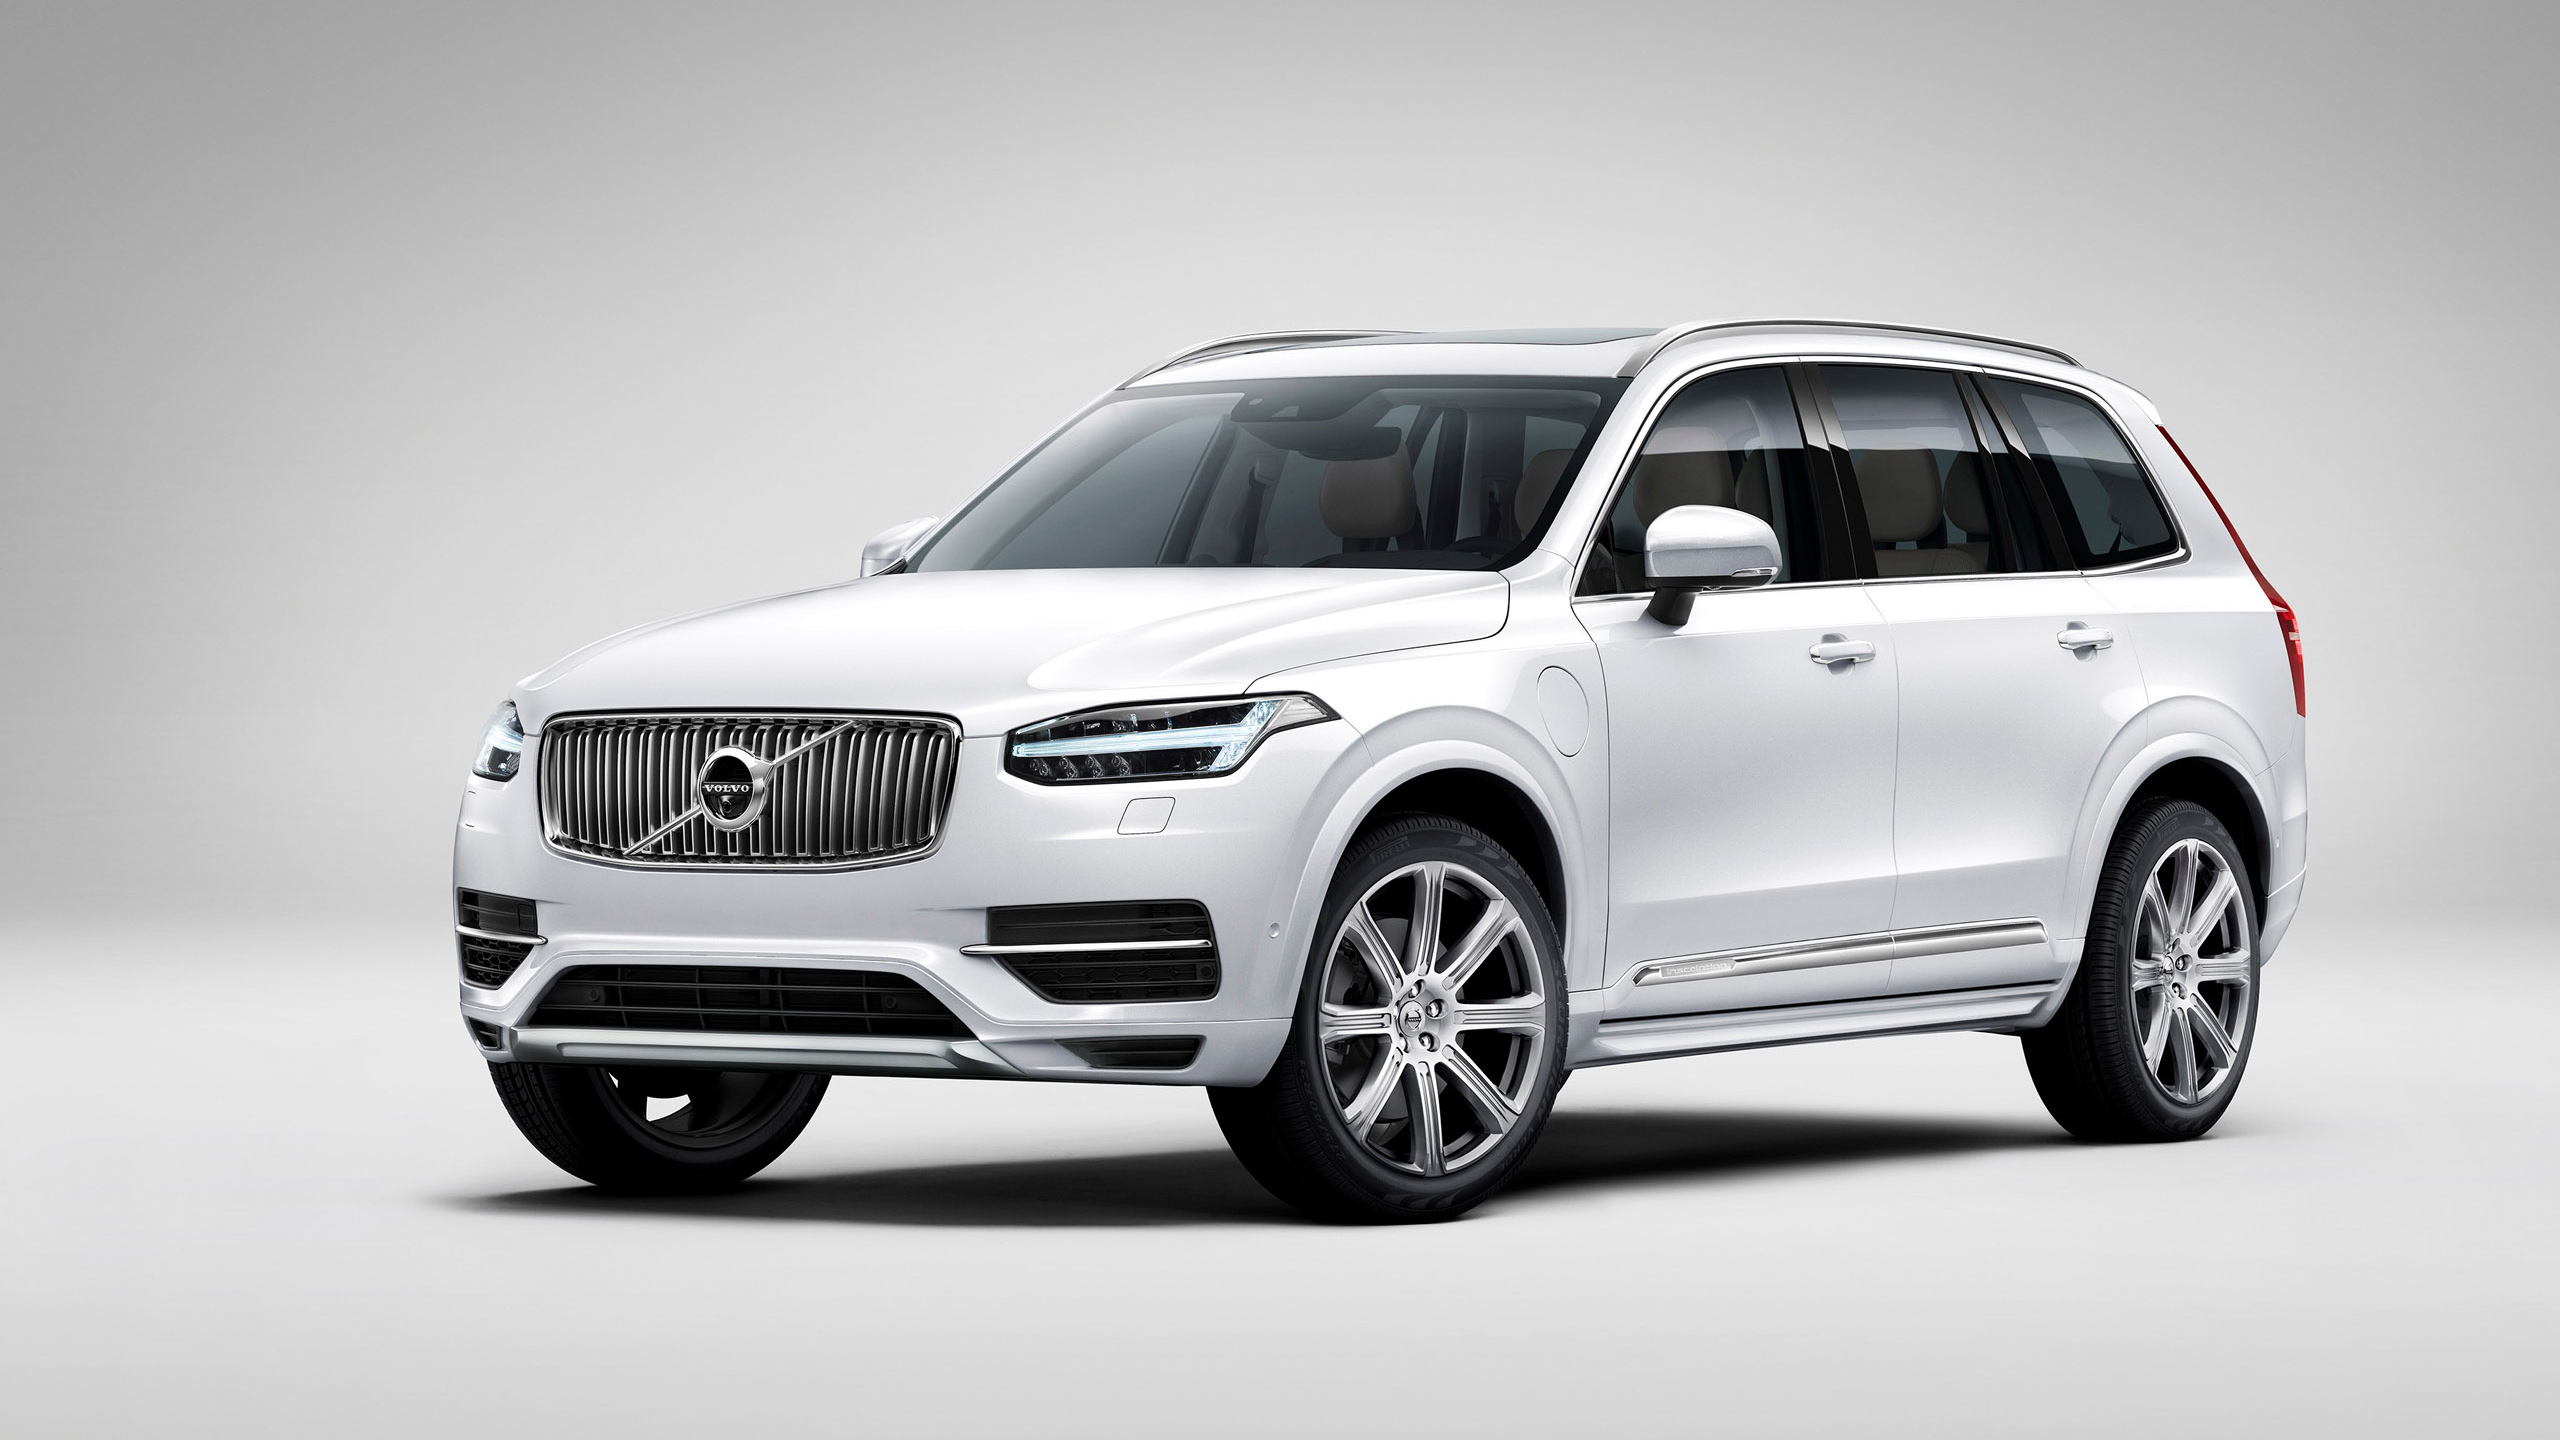 volvo xc90 2015 wallpaper hd car wallpapers. Black Bedroom Furniture Sets. Home Design Ideas